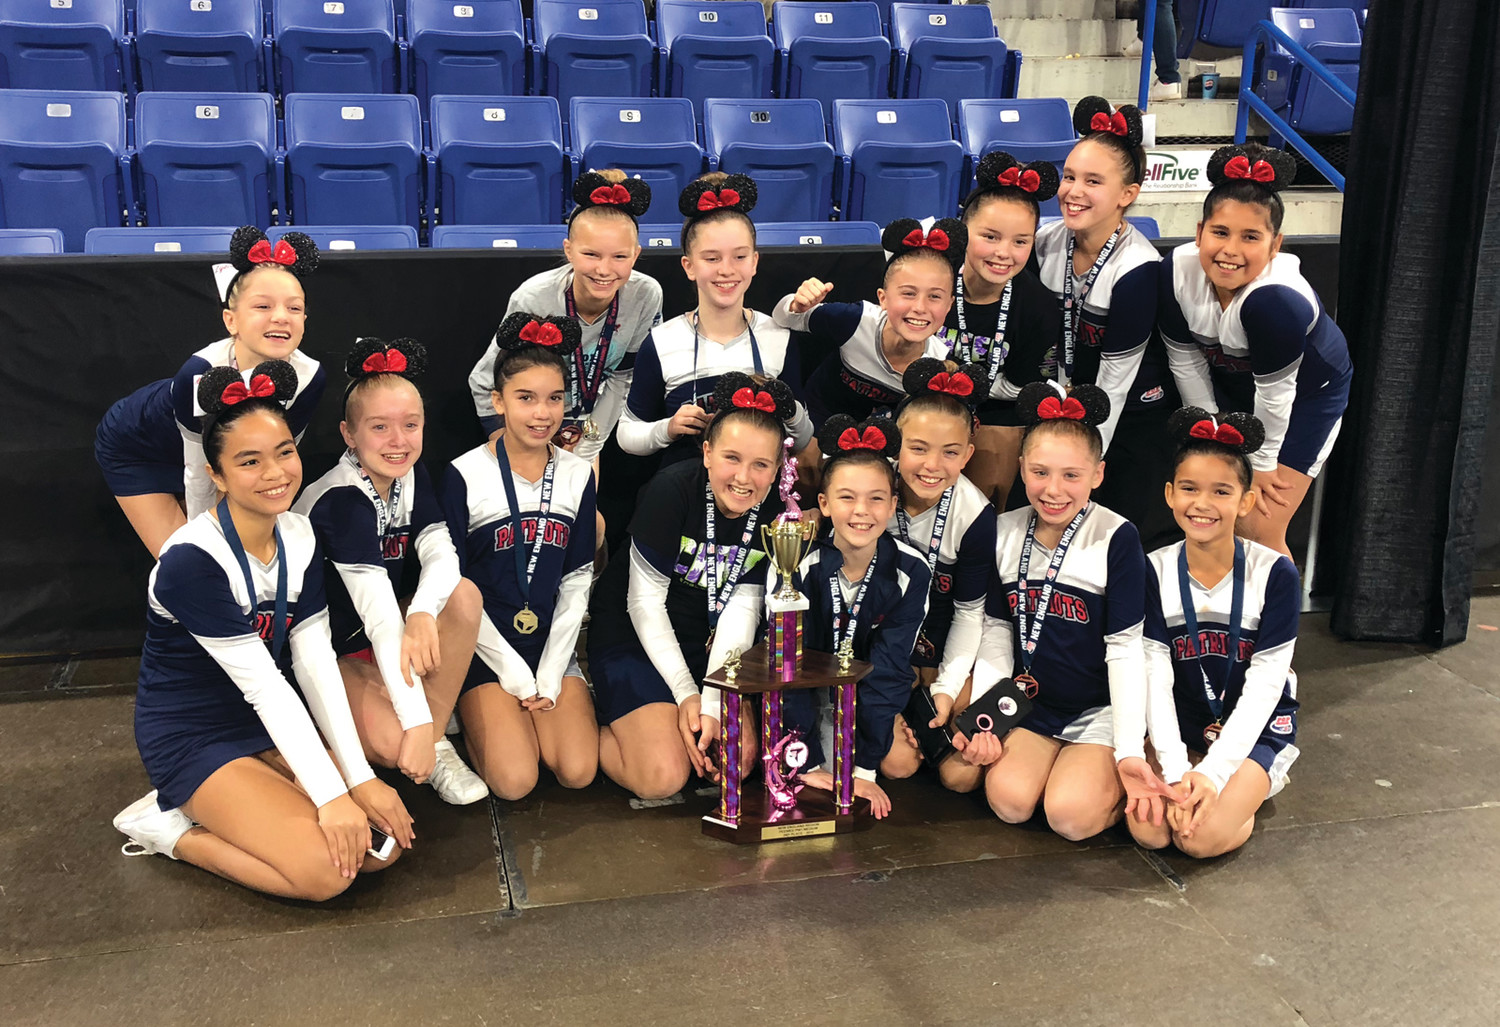 ON TO NATIONALS: The Warwick PAL cheerleading team after winning at regionals.